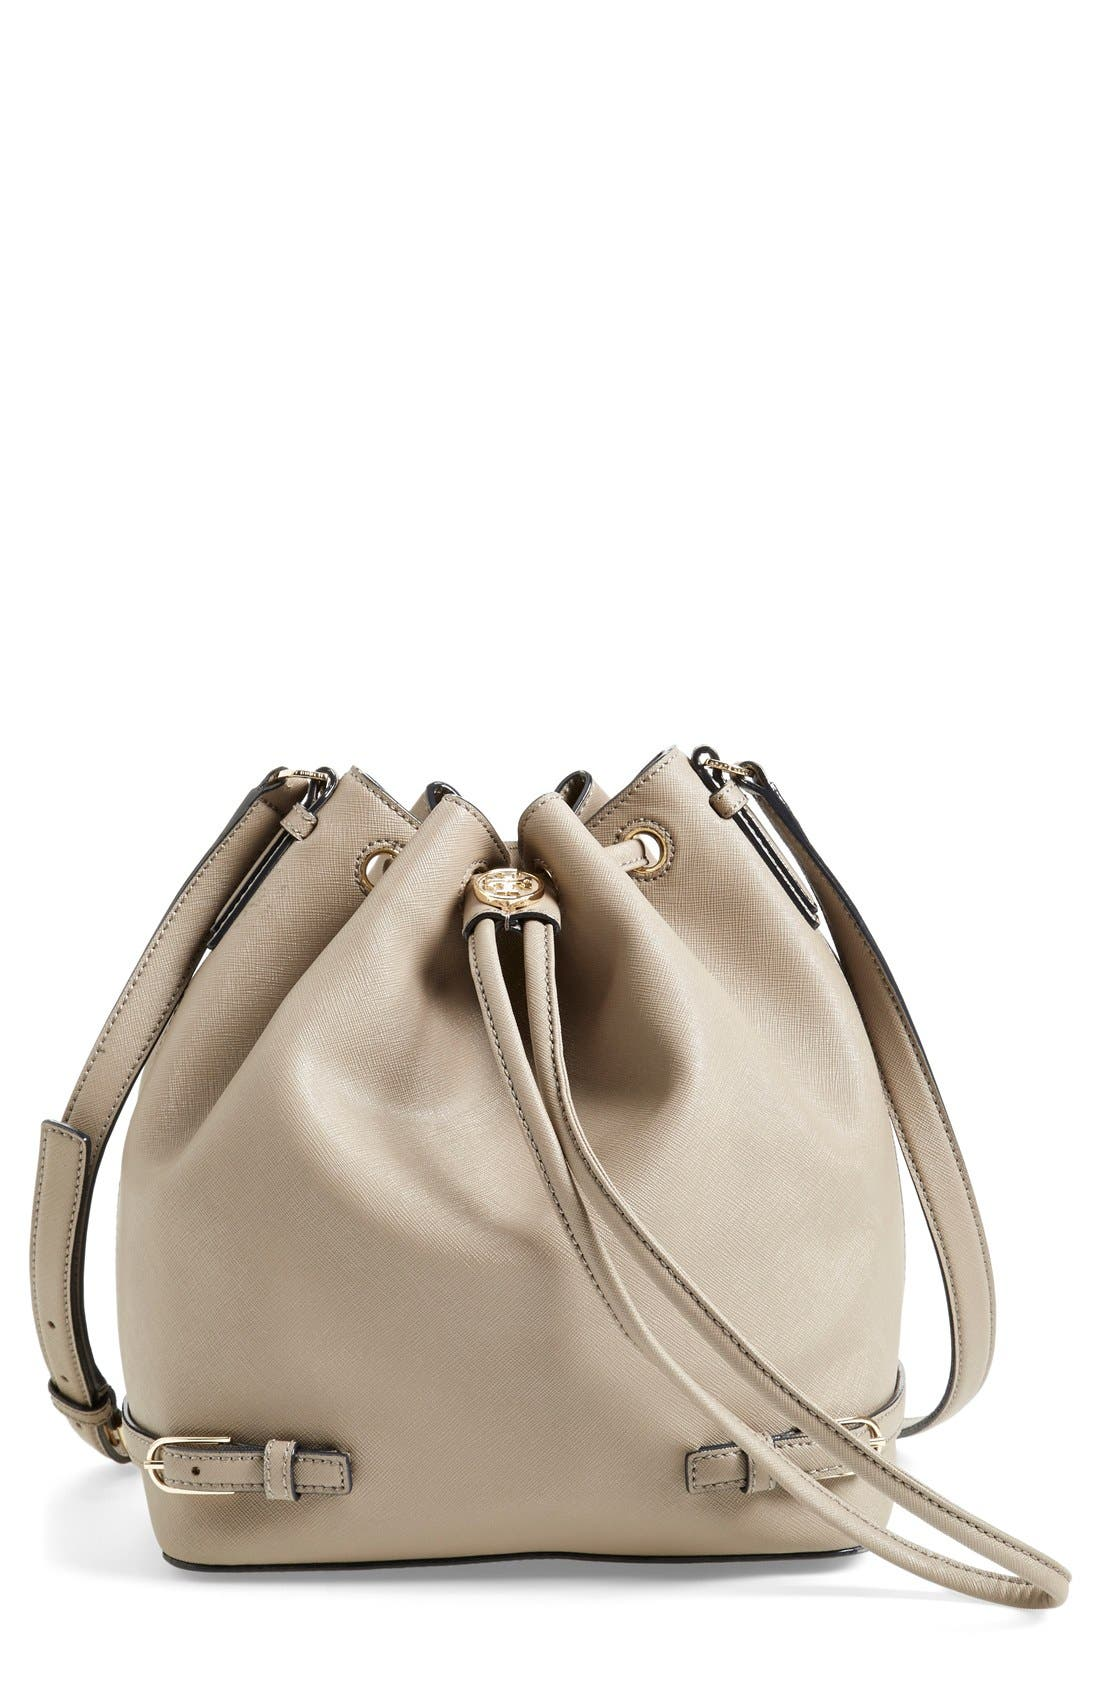 Alternate Image 1 Selected - Tory Burch 'Robinson' Saffiano Leather Bucket Bag